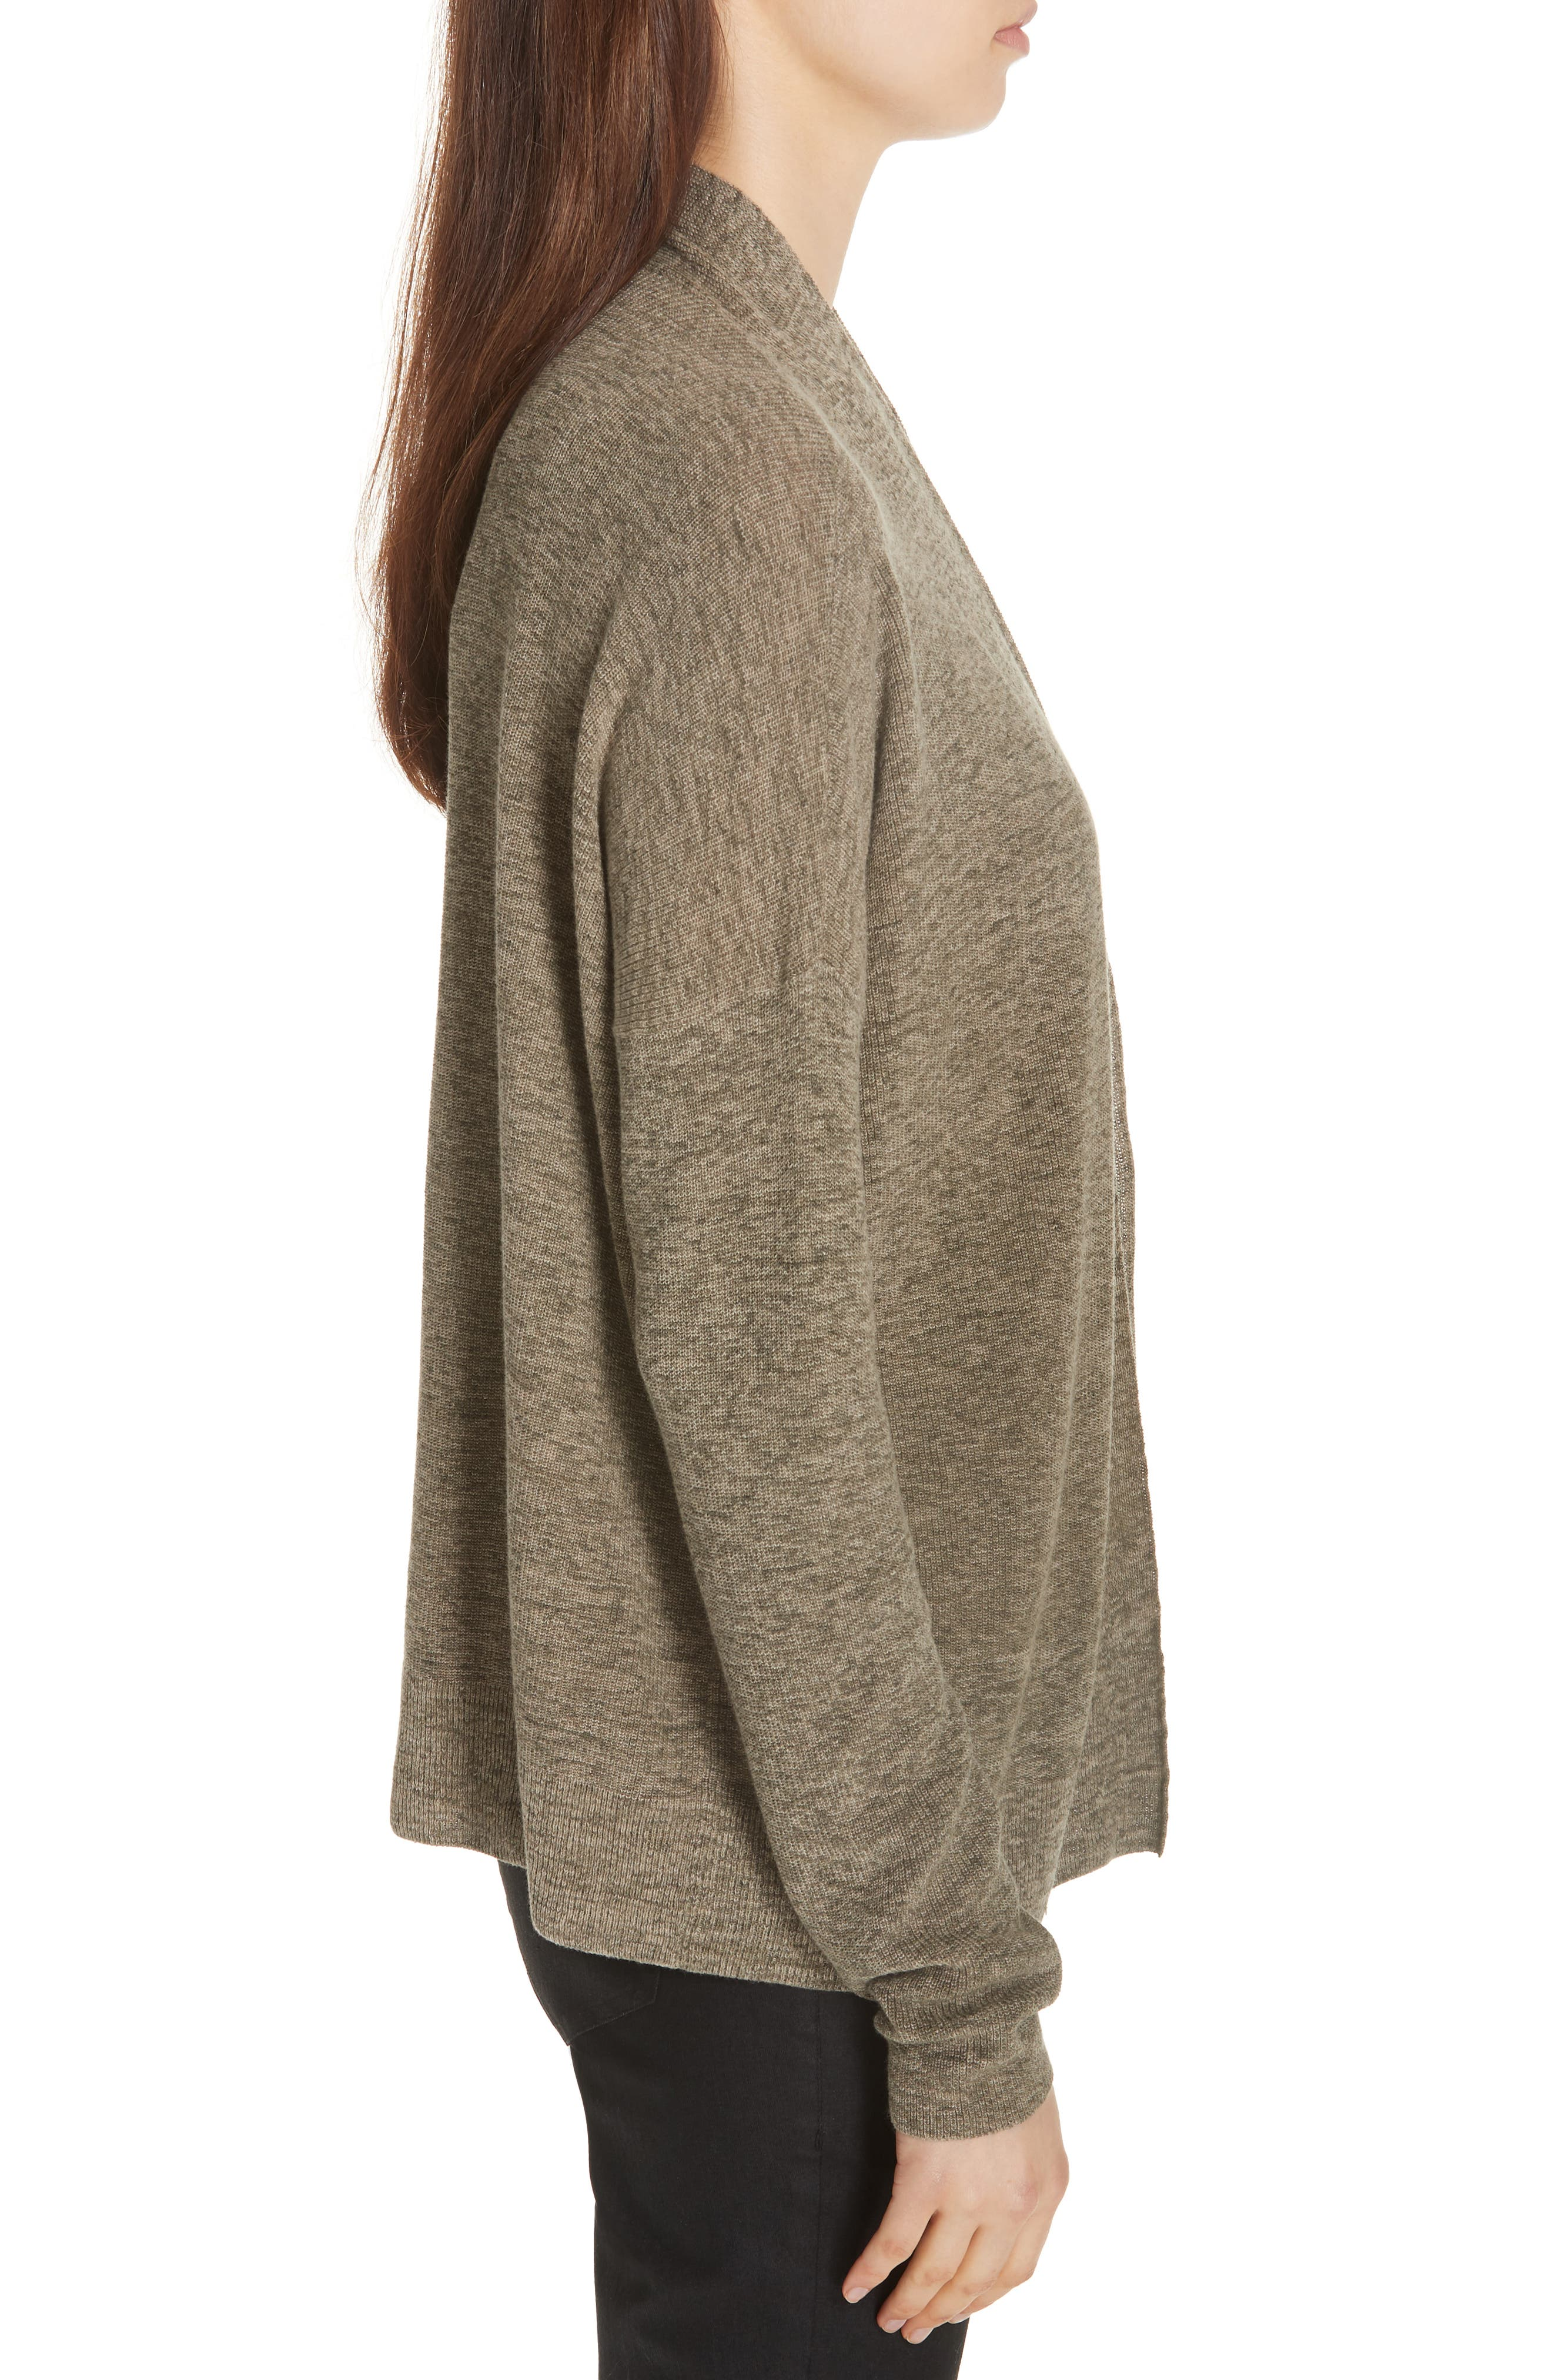 Simple Organic Cotton Cardigan,                             Alternate thumbnail 5, color,                             Olive